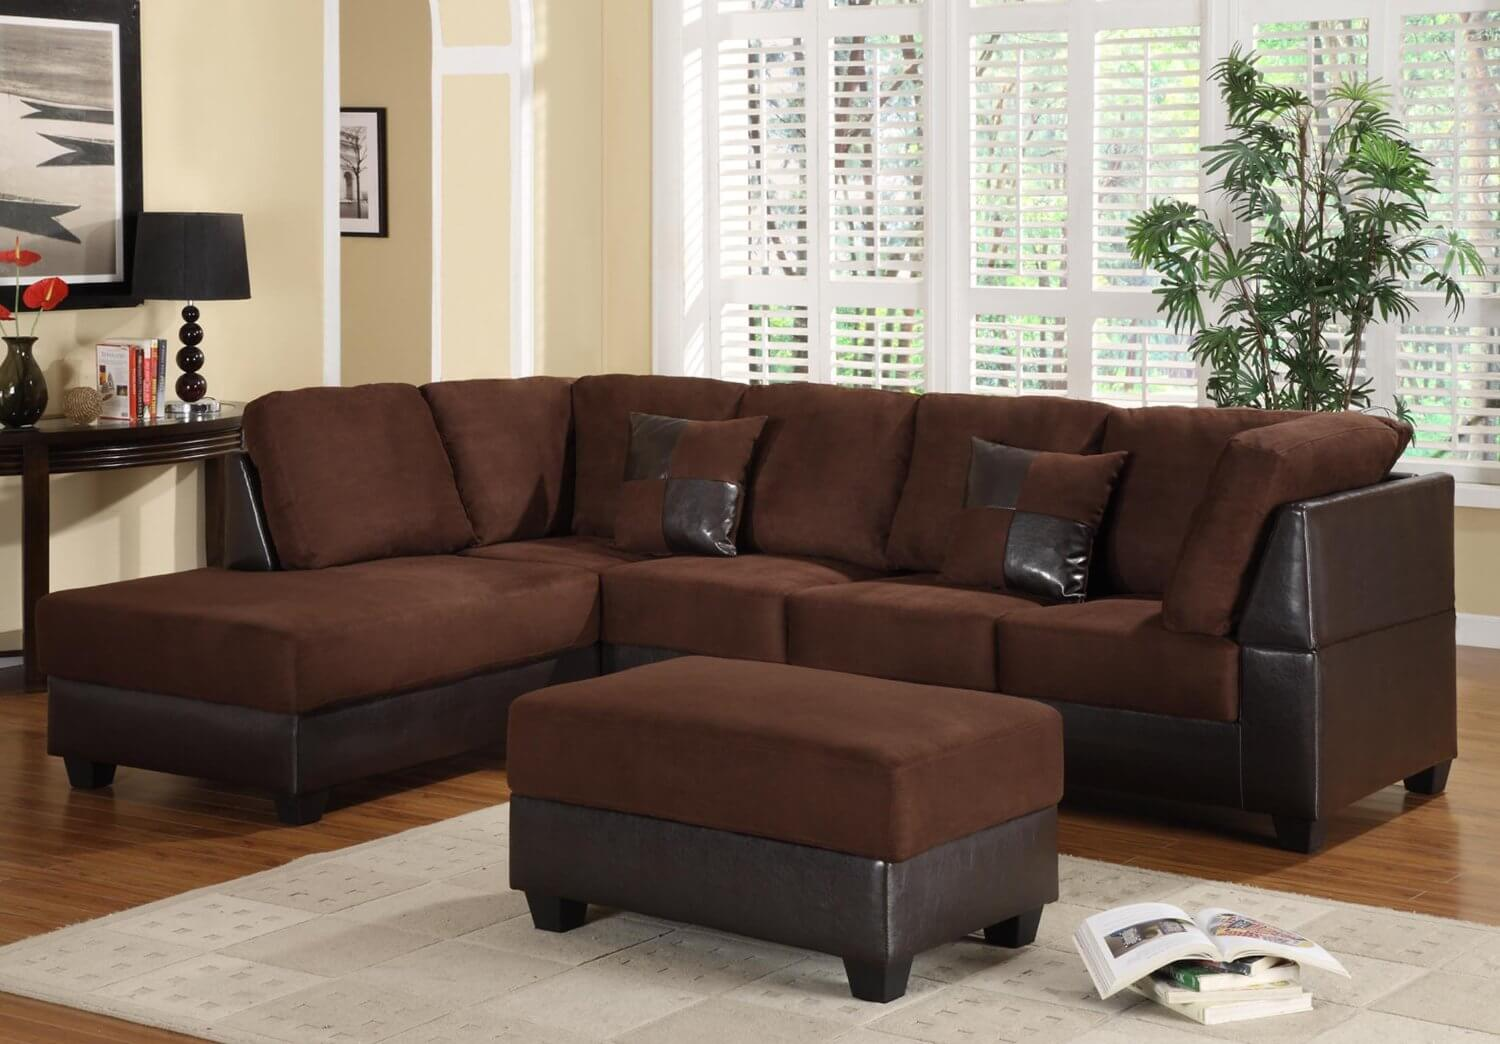 lounge and living sectional affordable couch sets chair sofas room set beautiful furniture